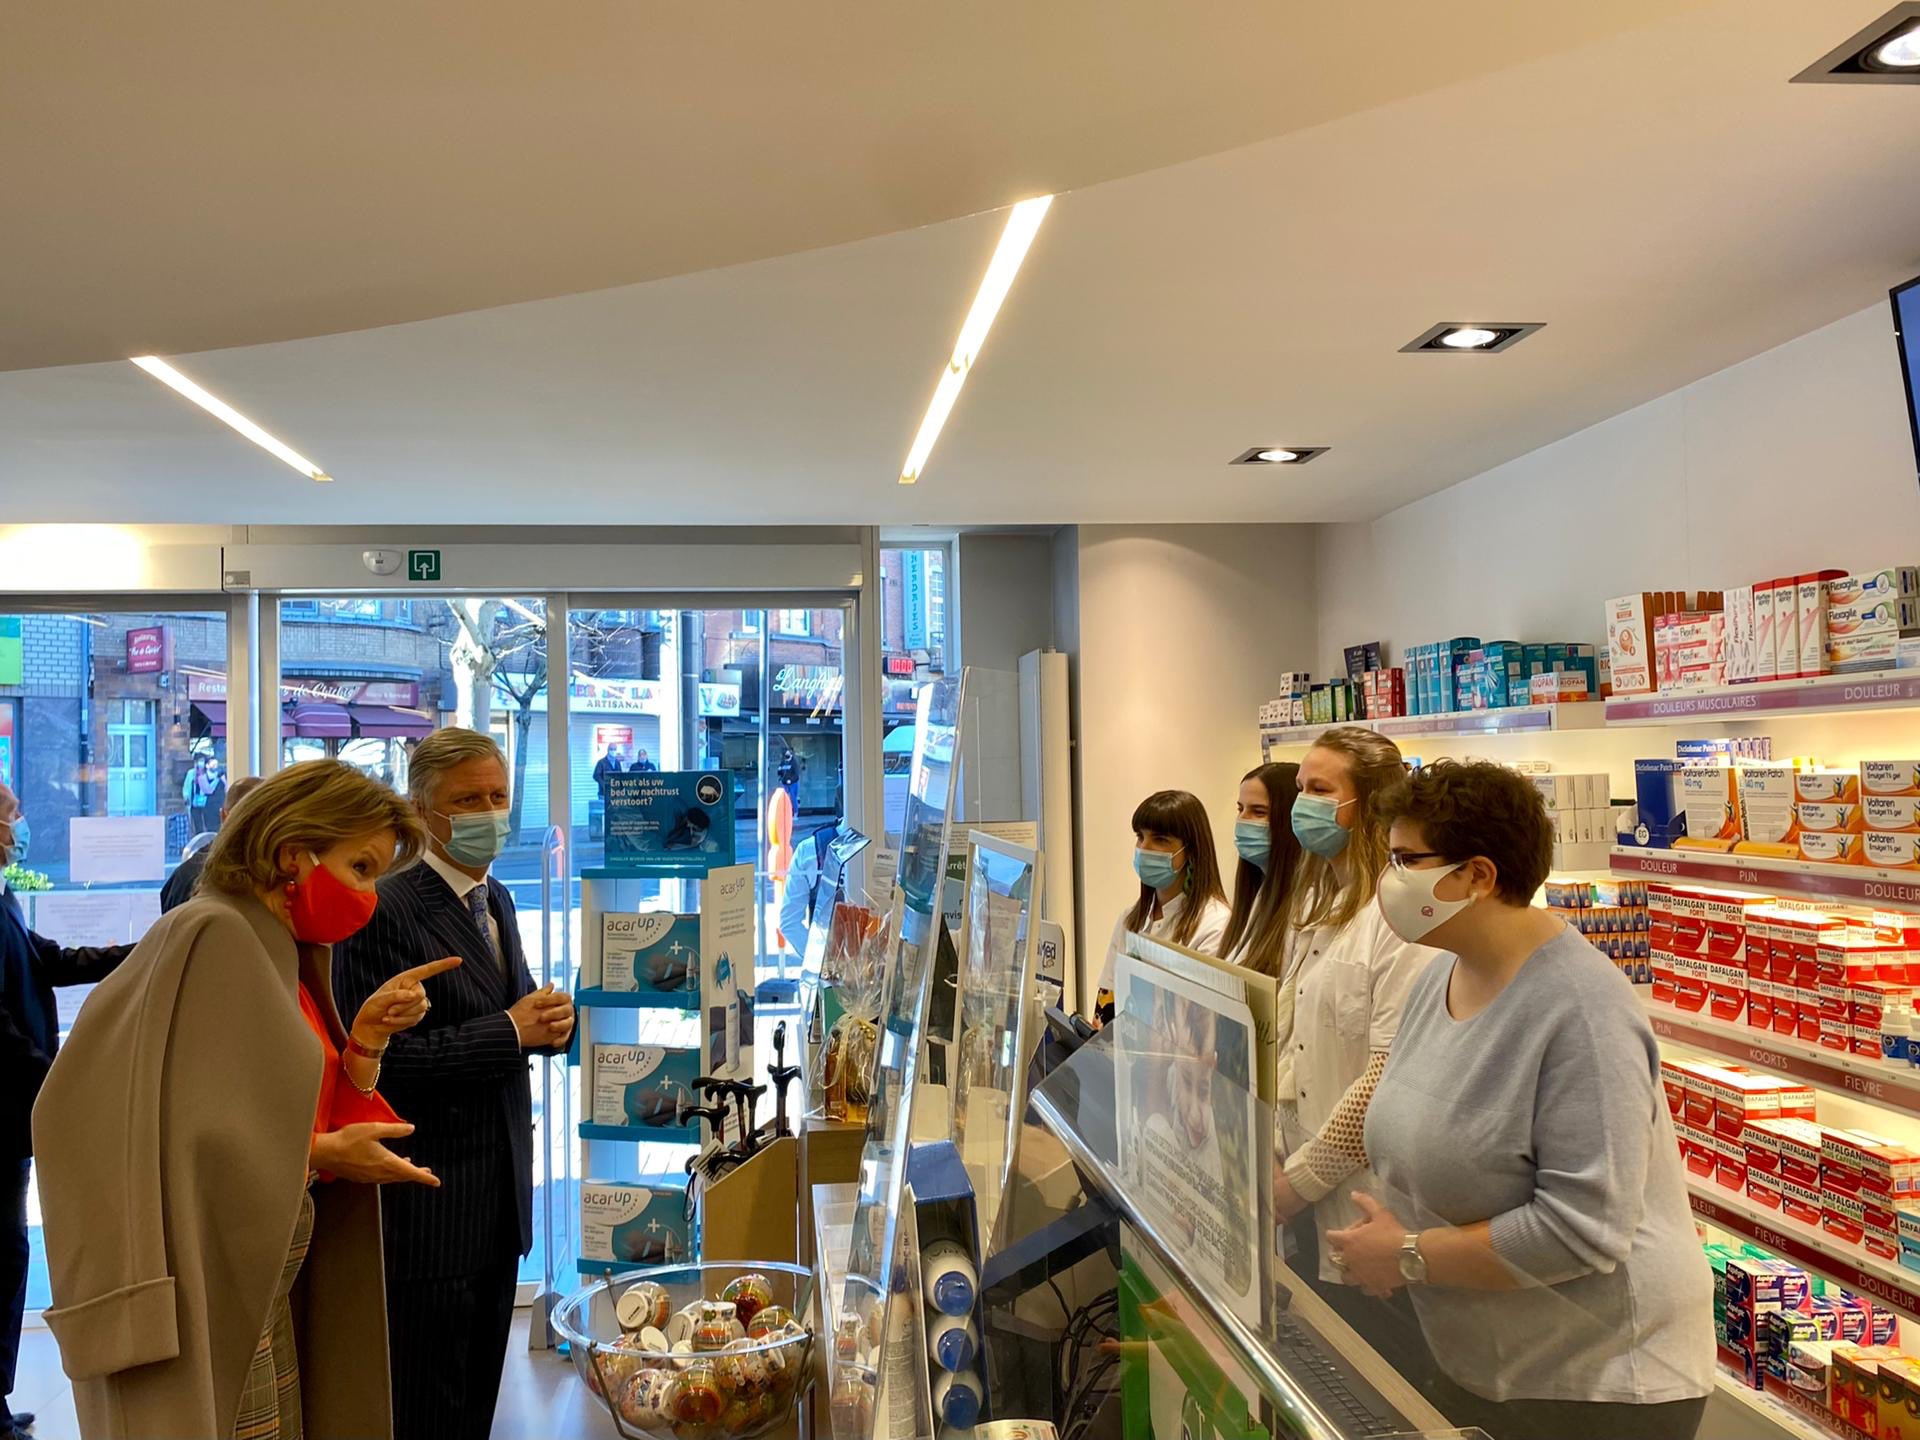 On Wednesday the King and Queen visited the Pharma Haelvoet pharmacy in Evere (Brussels-Capital Region).